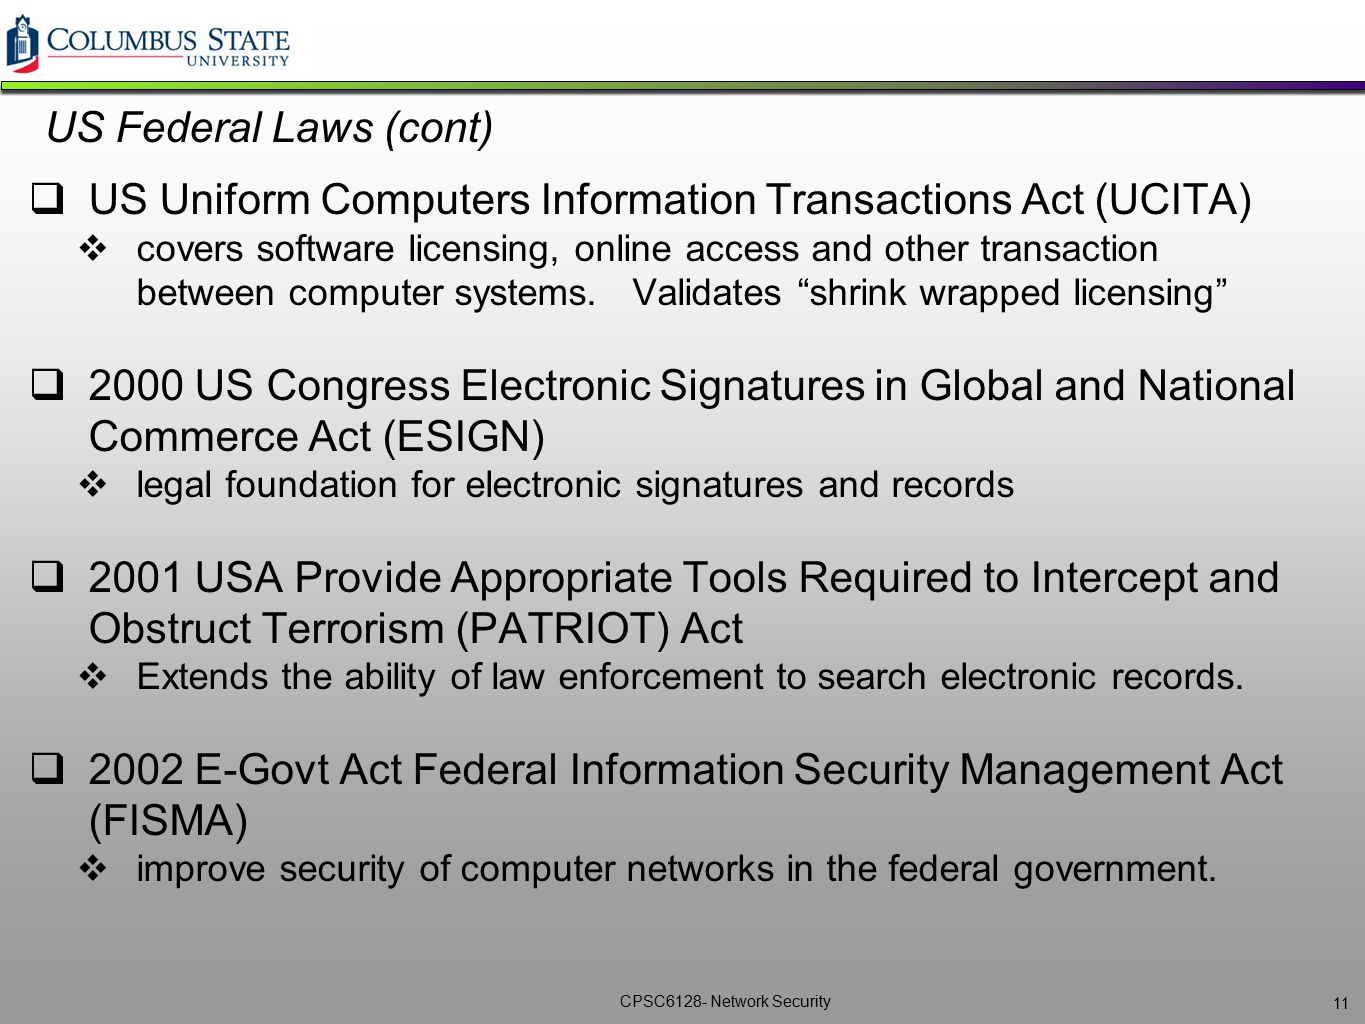 US Uniform Computers Information Transactions Act (UCITA)